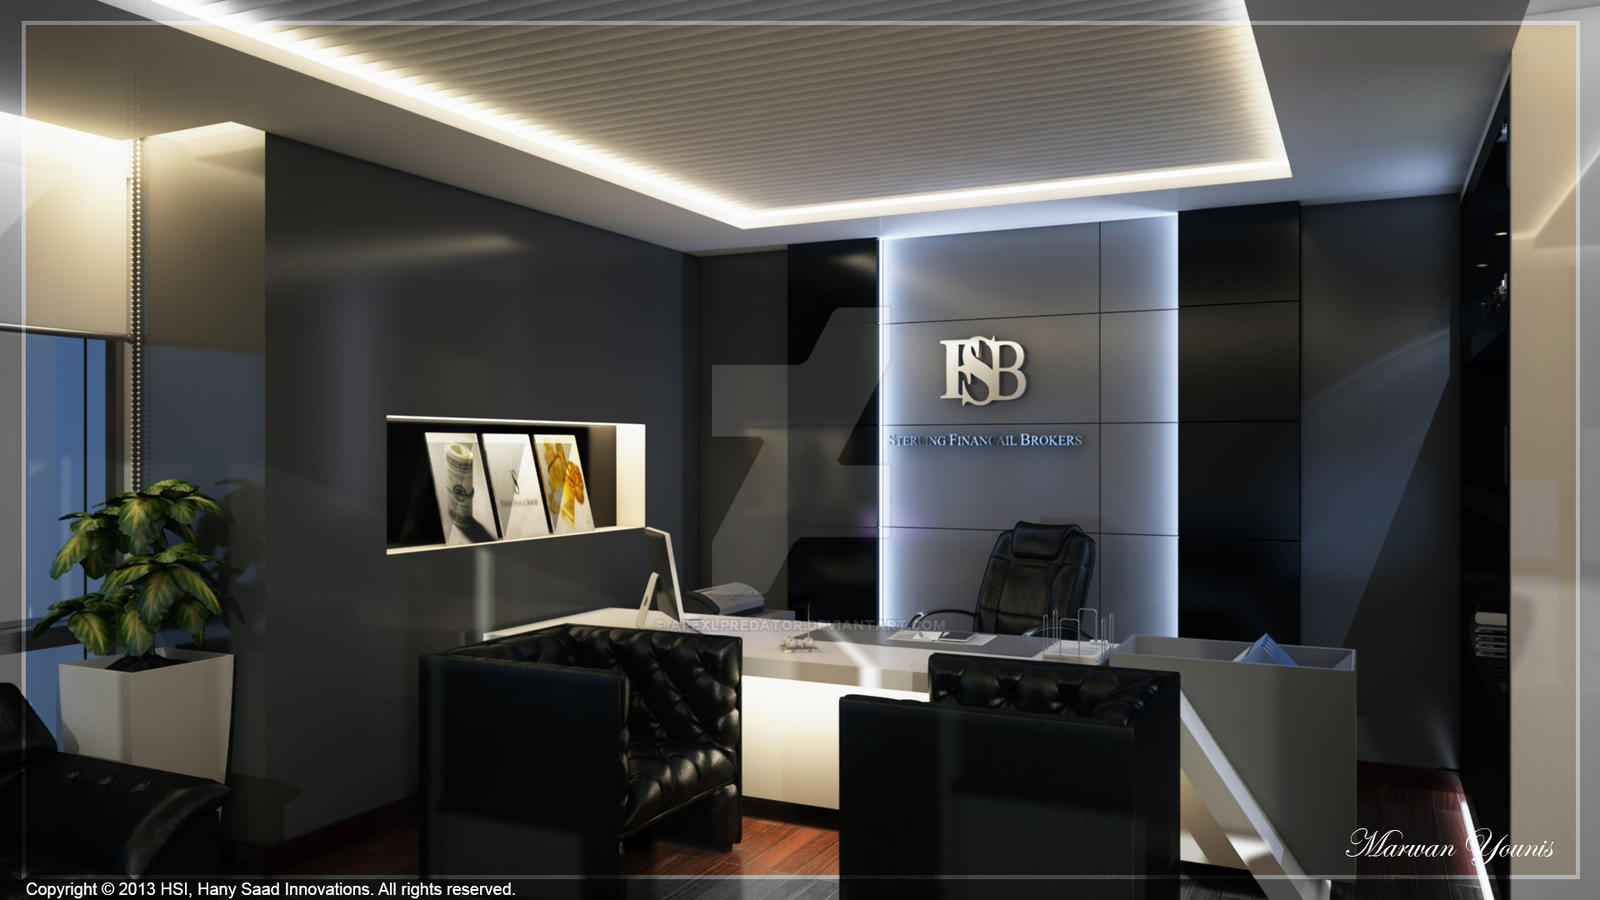 Ceo office 03 by apexlpredator on deviantart for Office design reddit